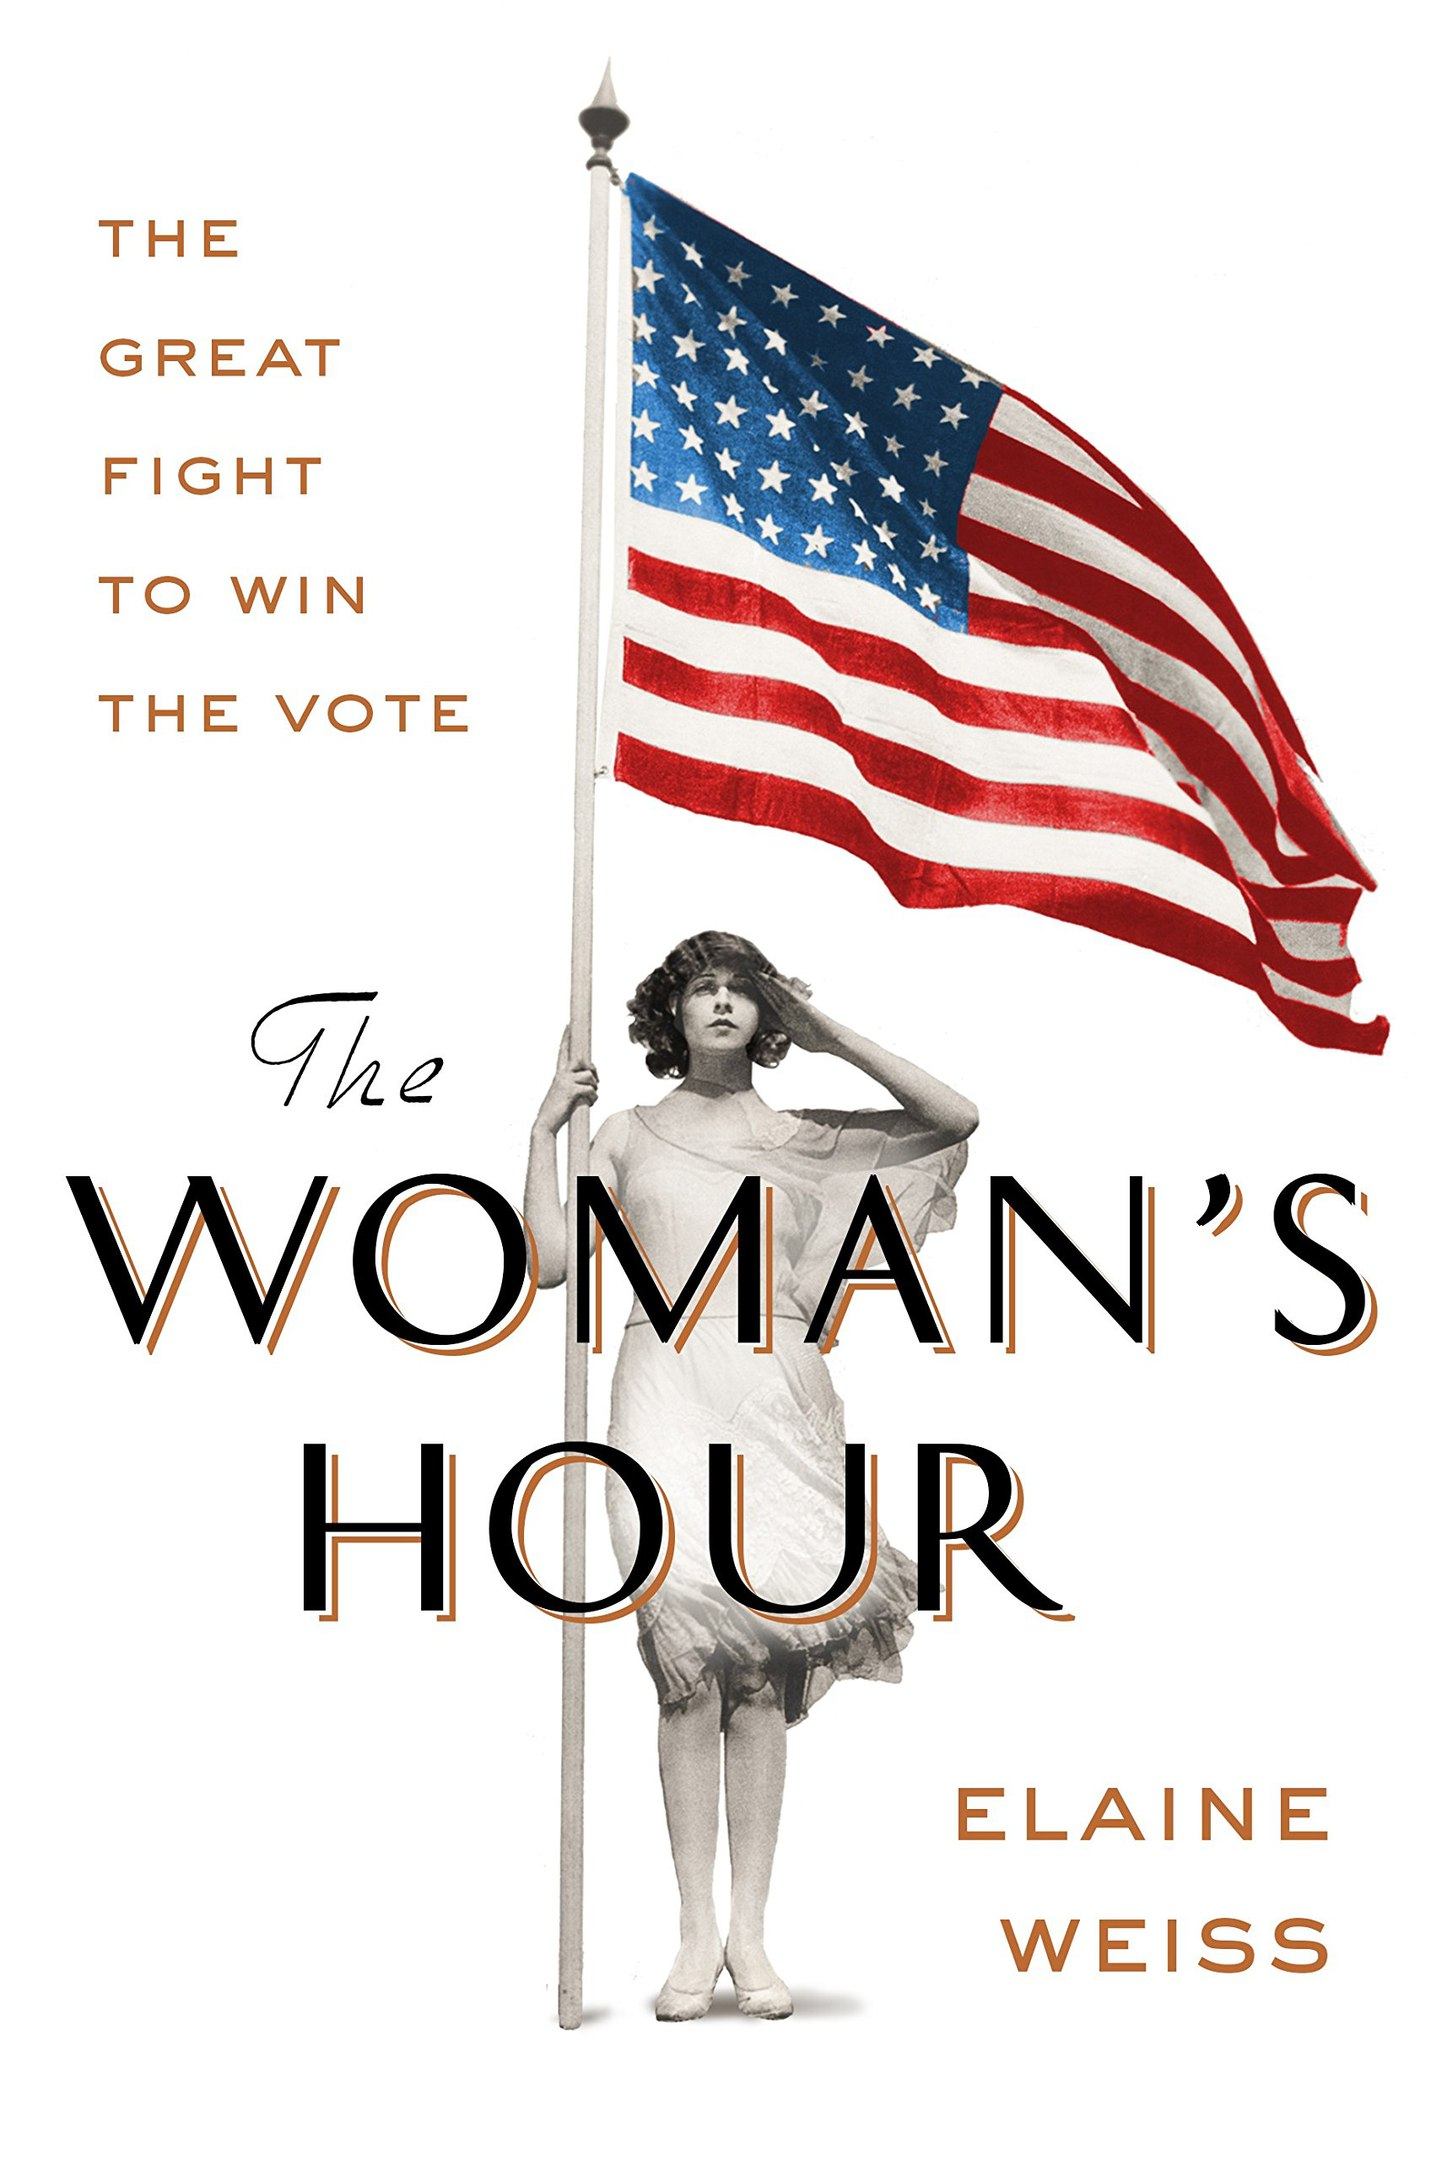 Elaine Weiss – The Woman's Hour